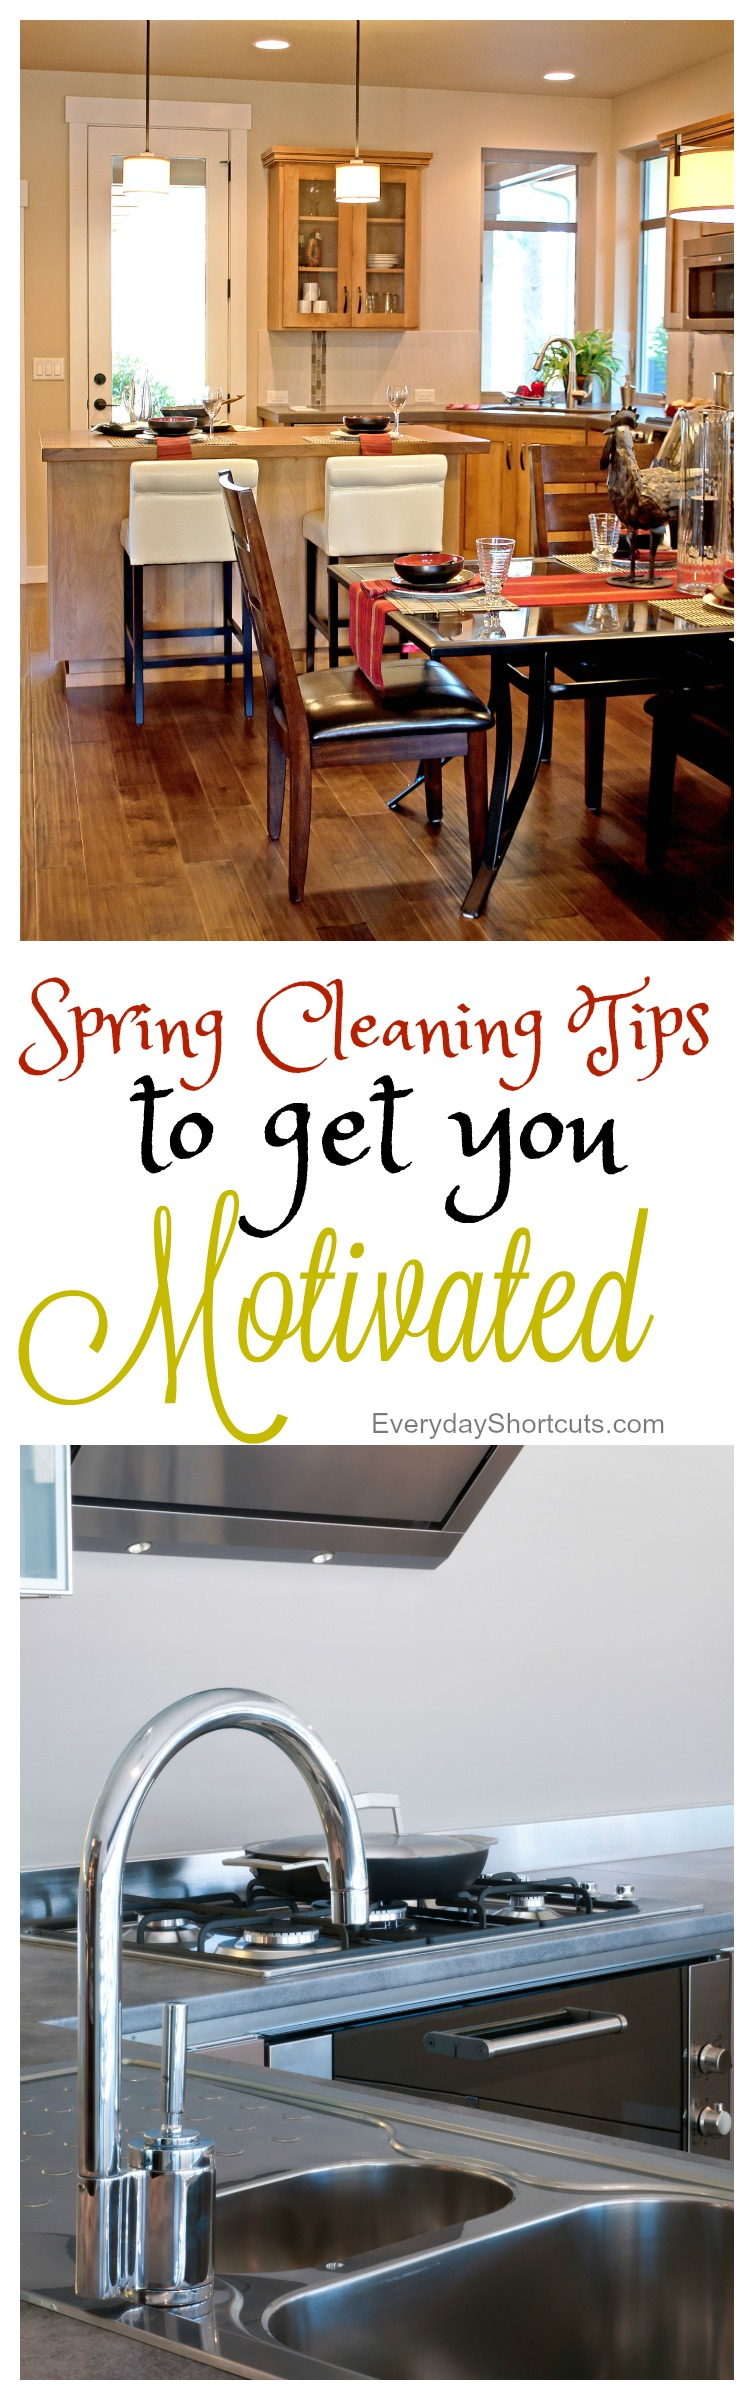 Spring-Cleaning-Tips-to-Get-you-Motivated